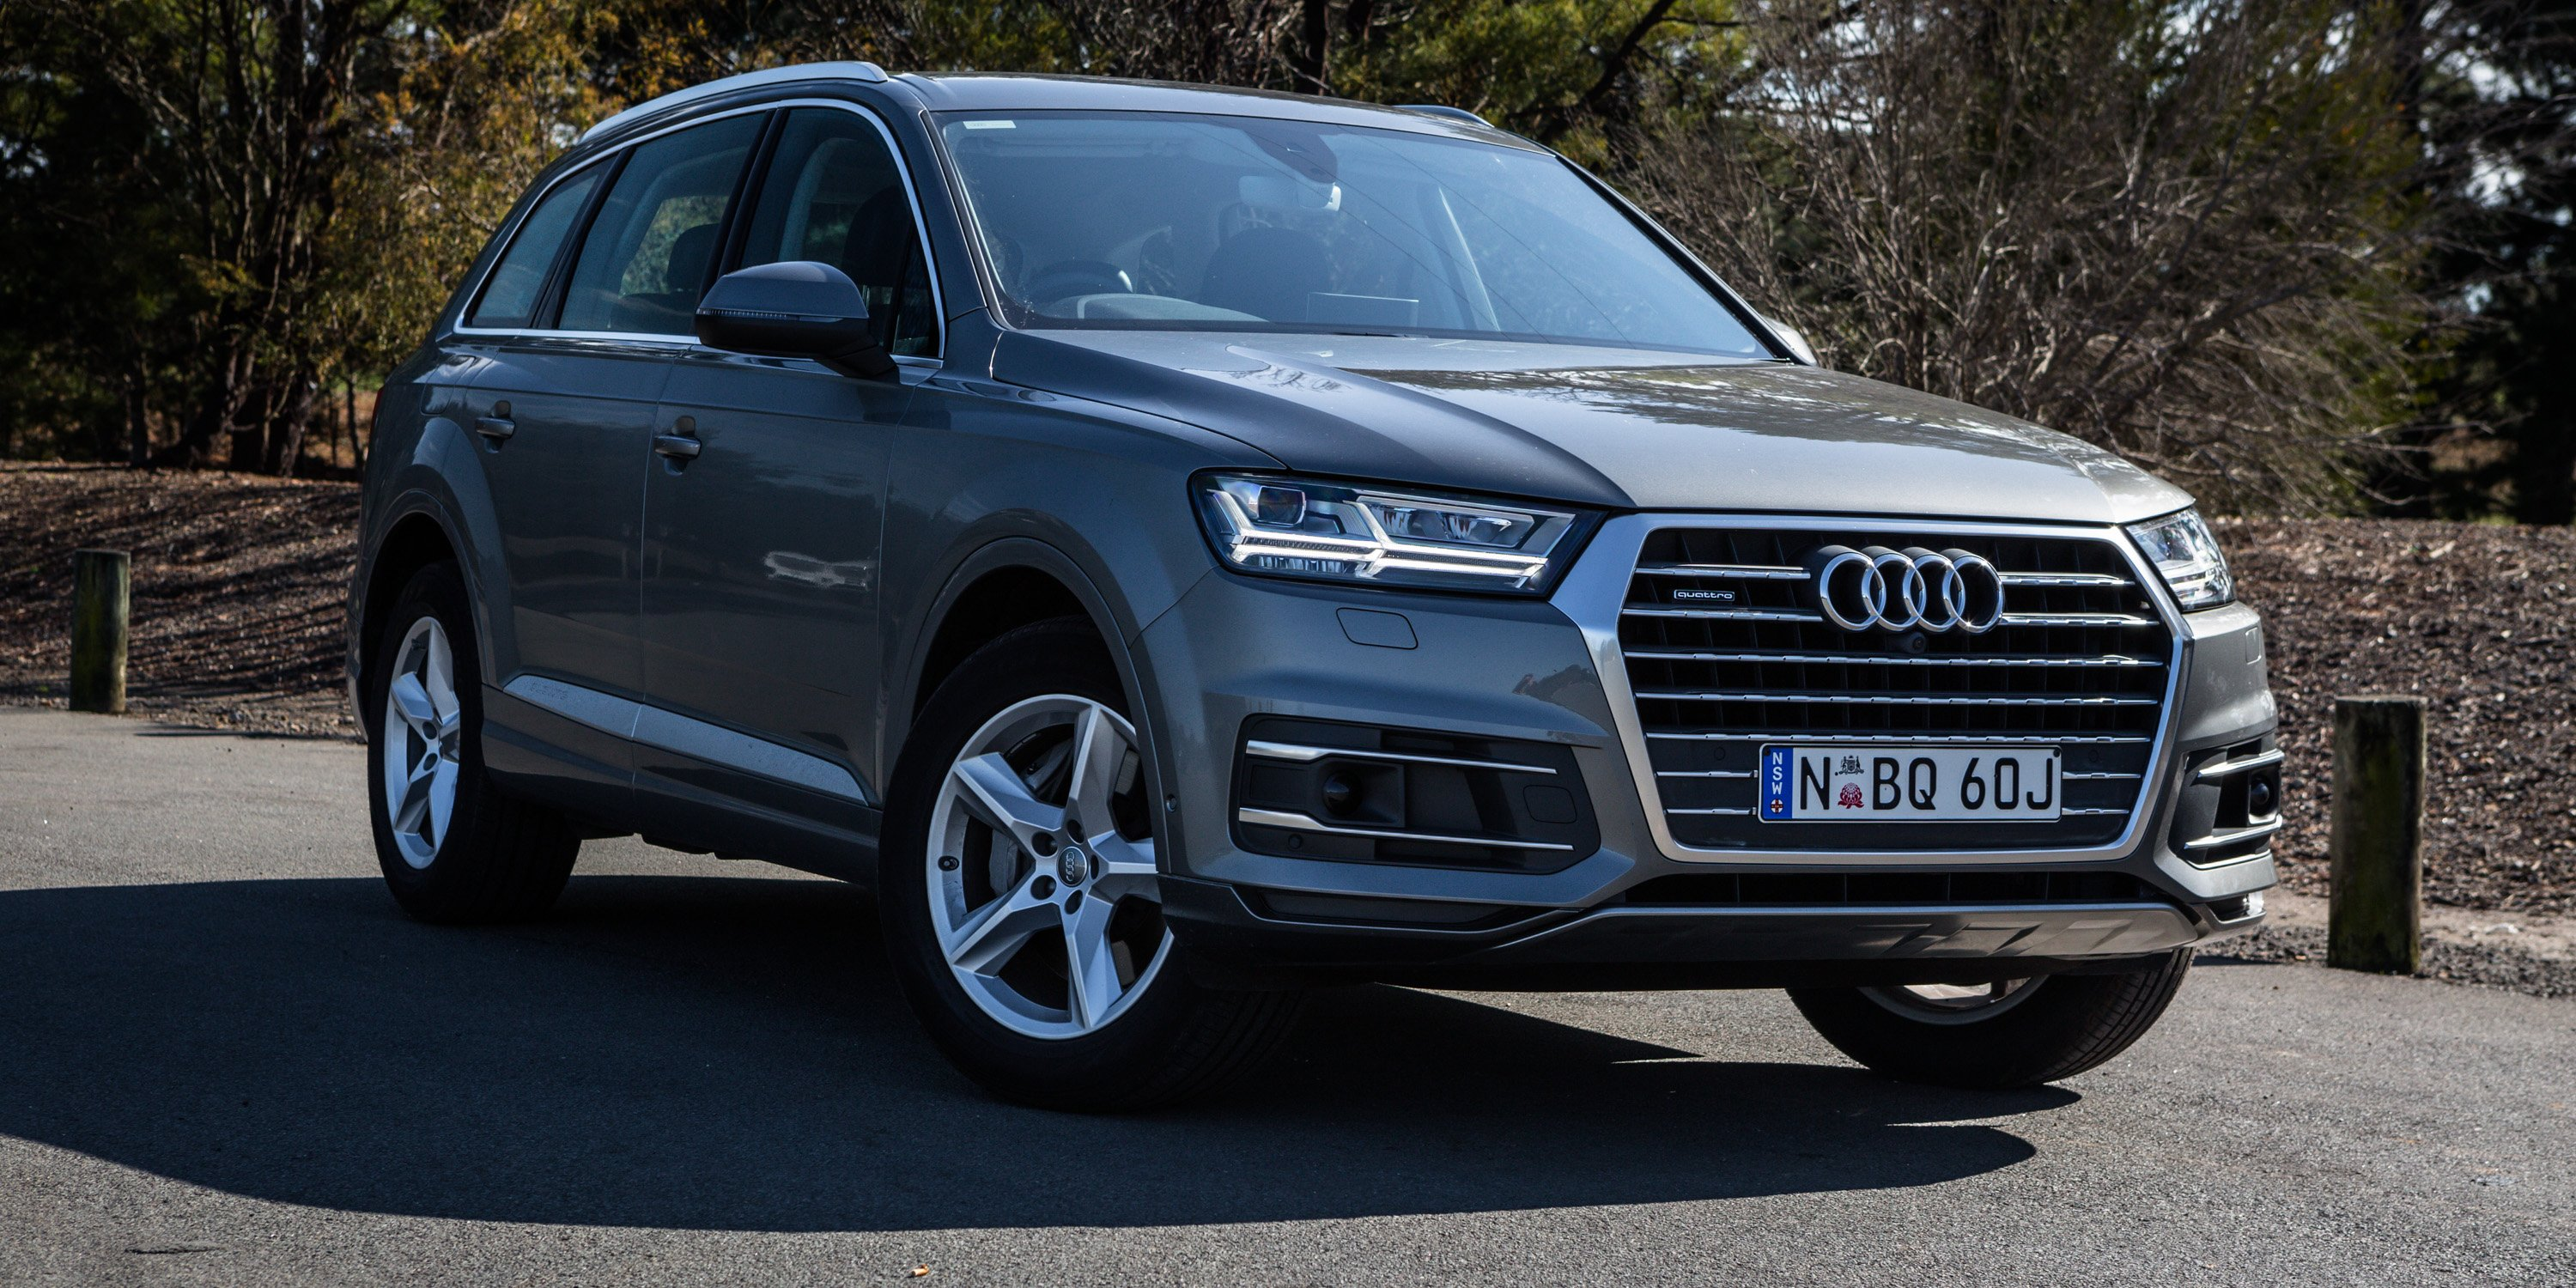 2016 17 audi q7 sq7 recalled for seat fix 3400 vehicles affected photos 1 of 2. Black Bedroom Furniture Sets. Home Design Ideas